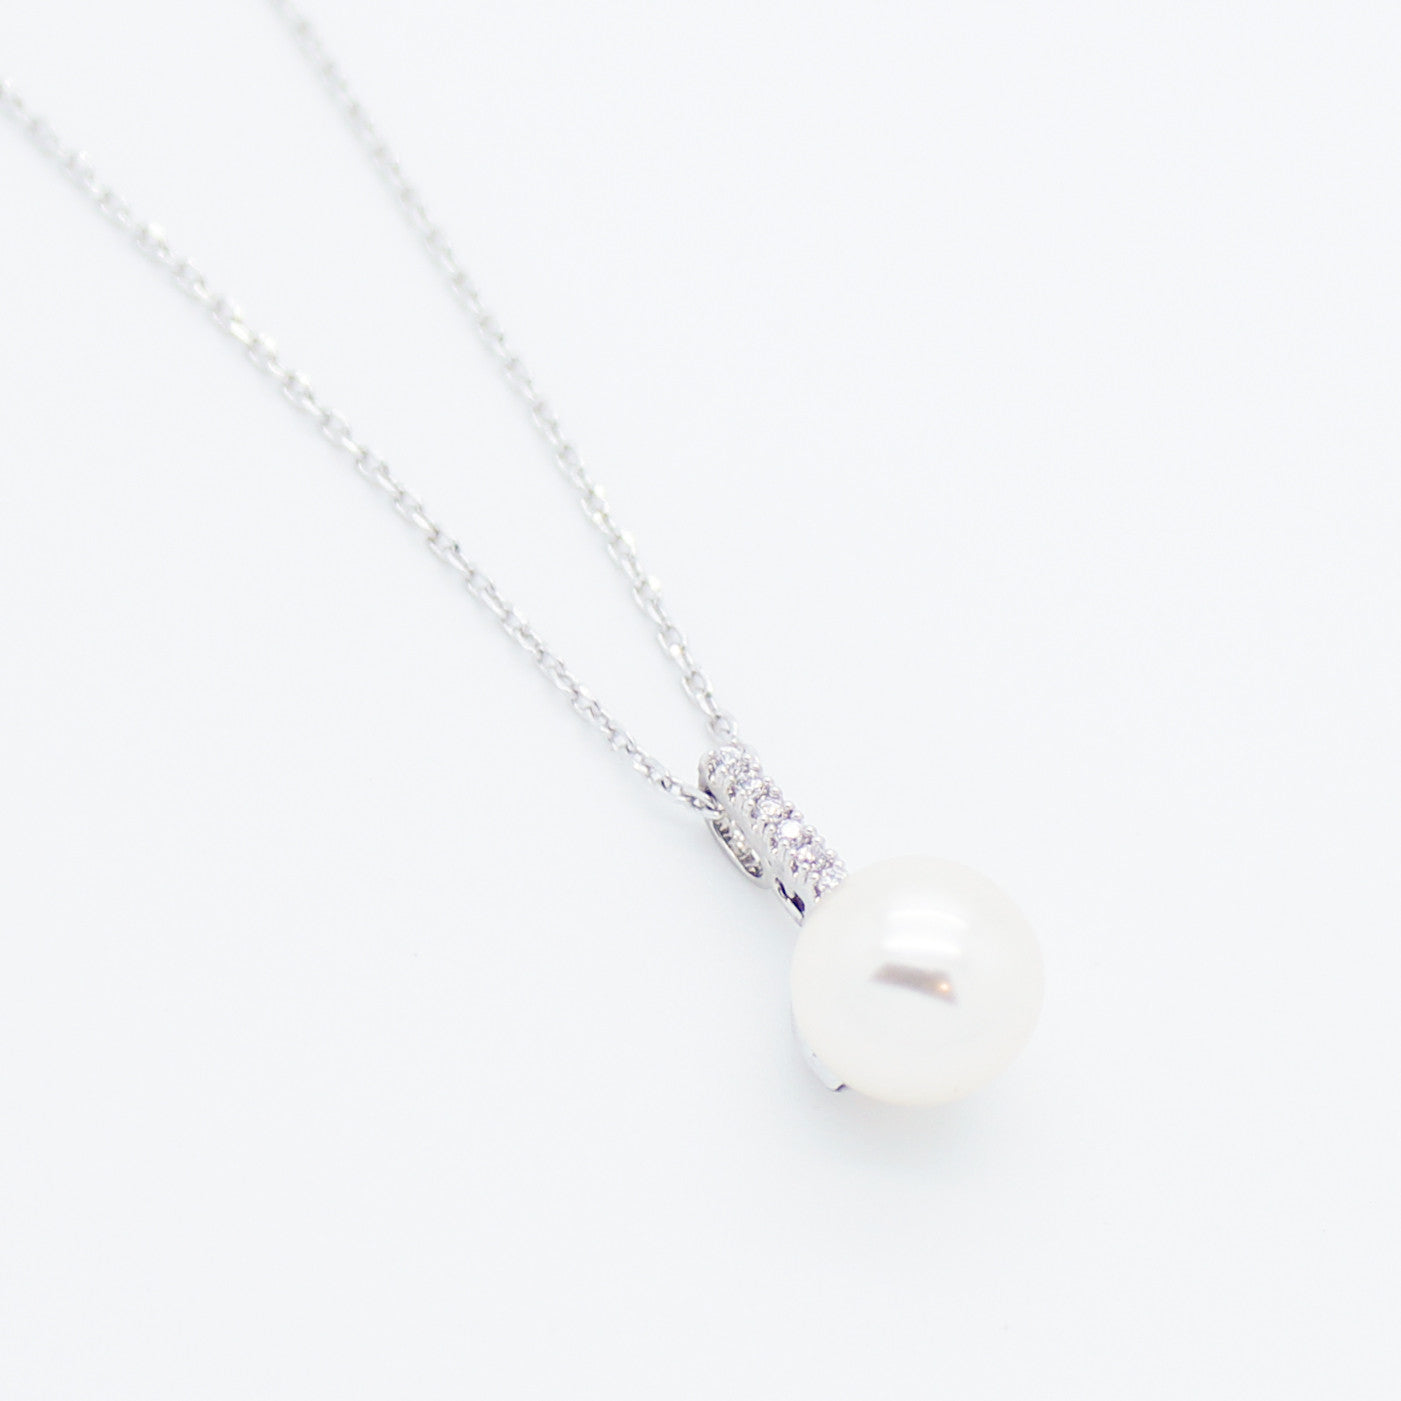 harbour com the necklace pics necklaces bluestone pearl